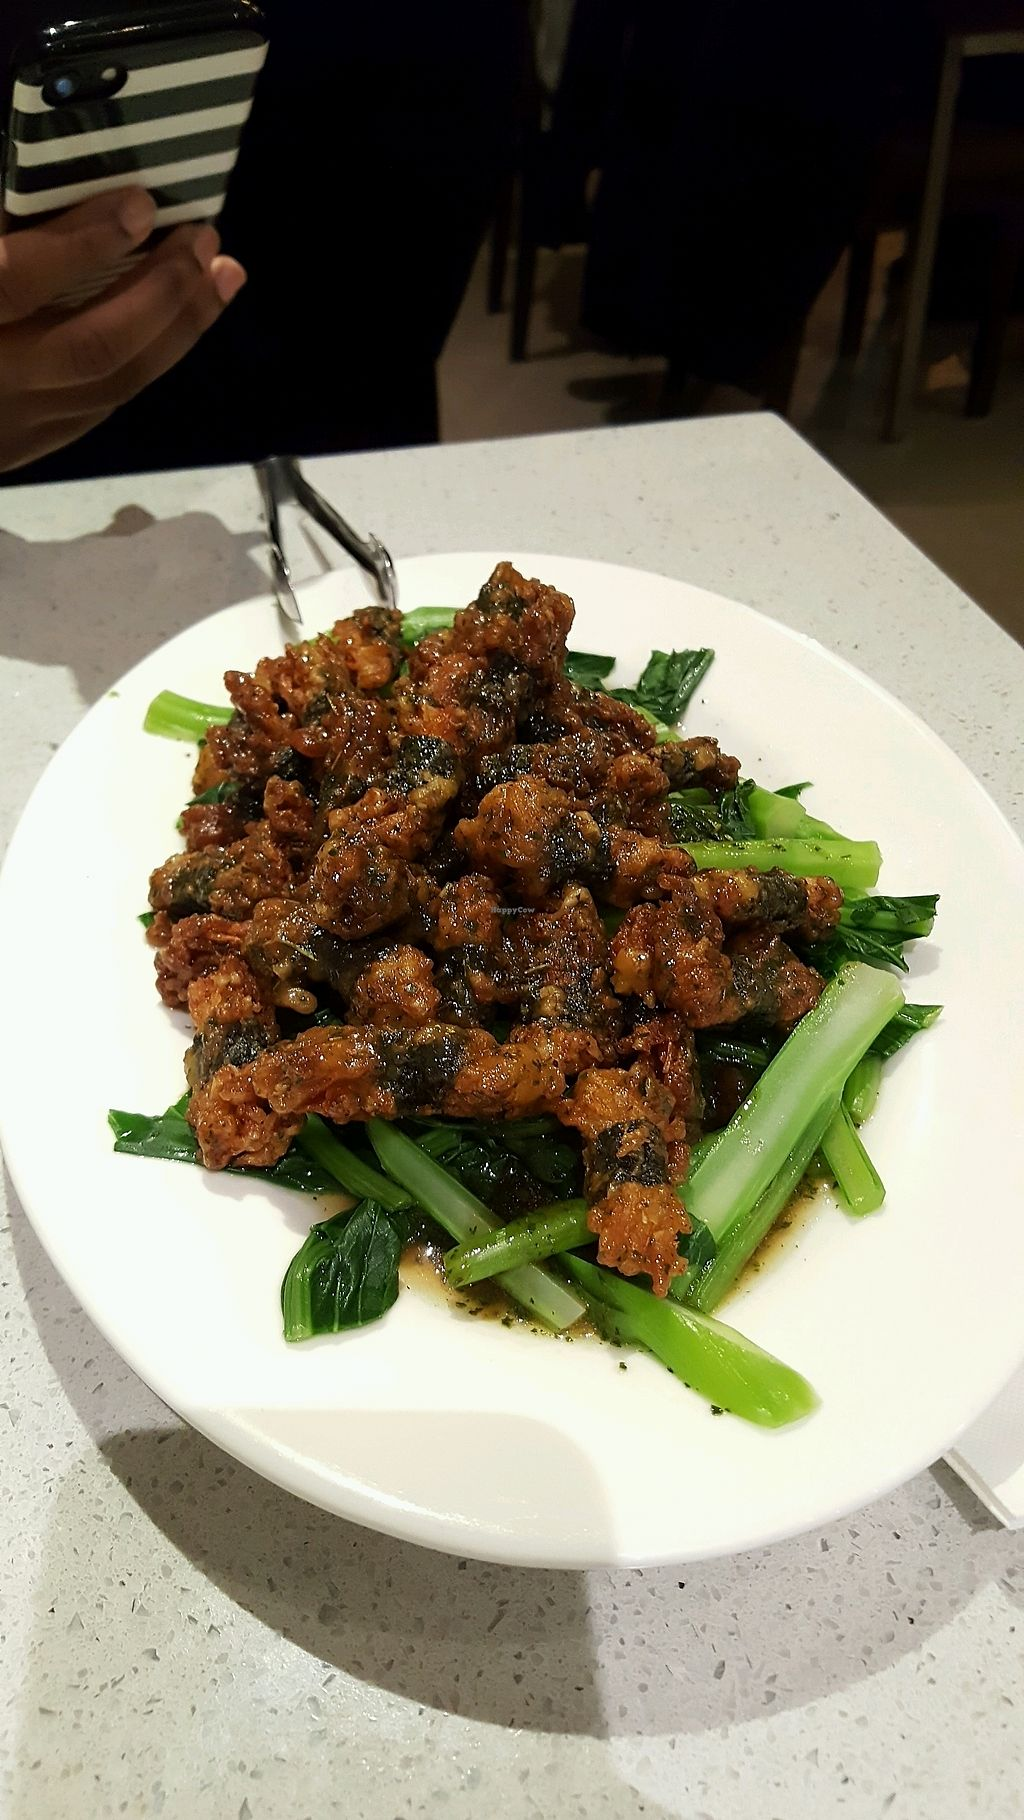 """Photo of King's Cafe  by <a href=""""/members/profile/Brit87"""">Brit87</a> <br/>enoki mushroom balls <br/> February 18, 2018  - <a href='/contact/abuse/image/17836/360660'>Report</a>"""